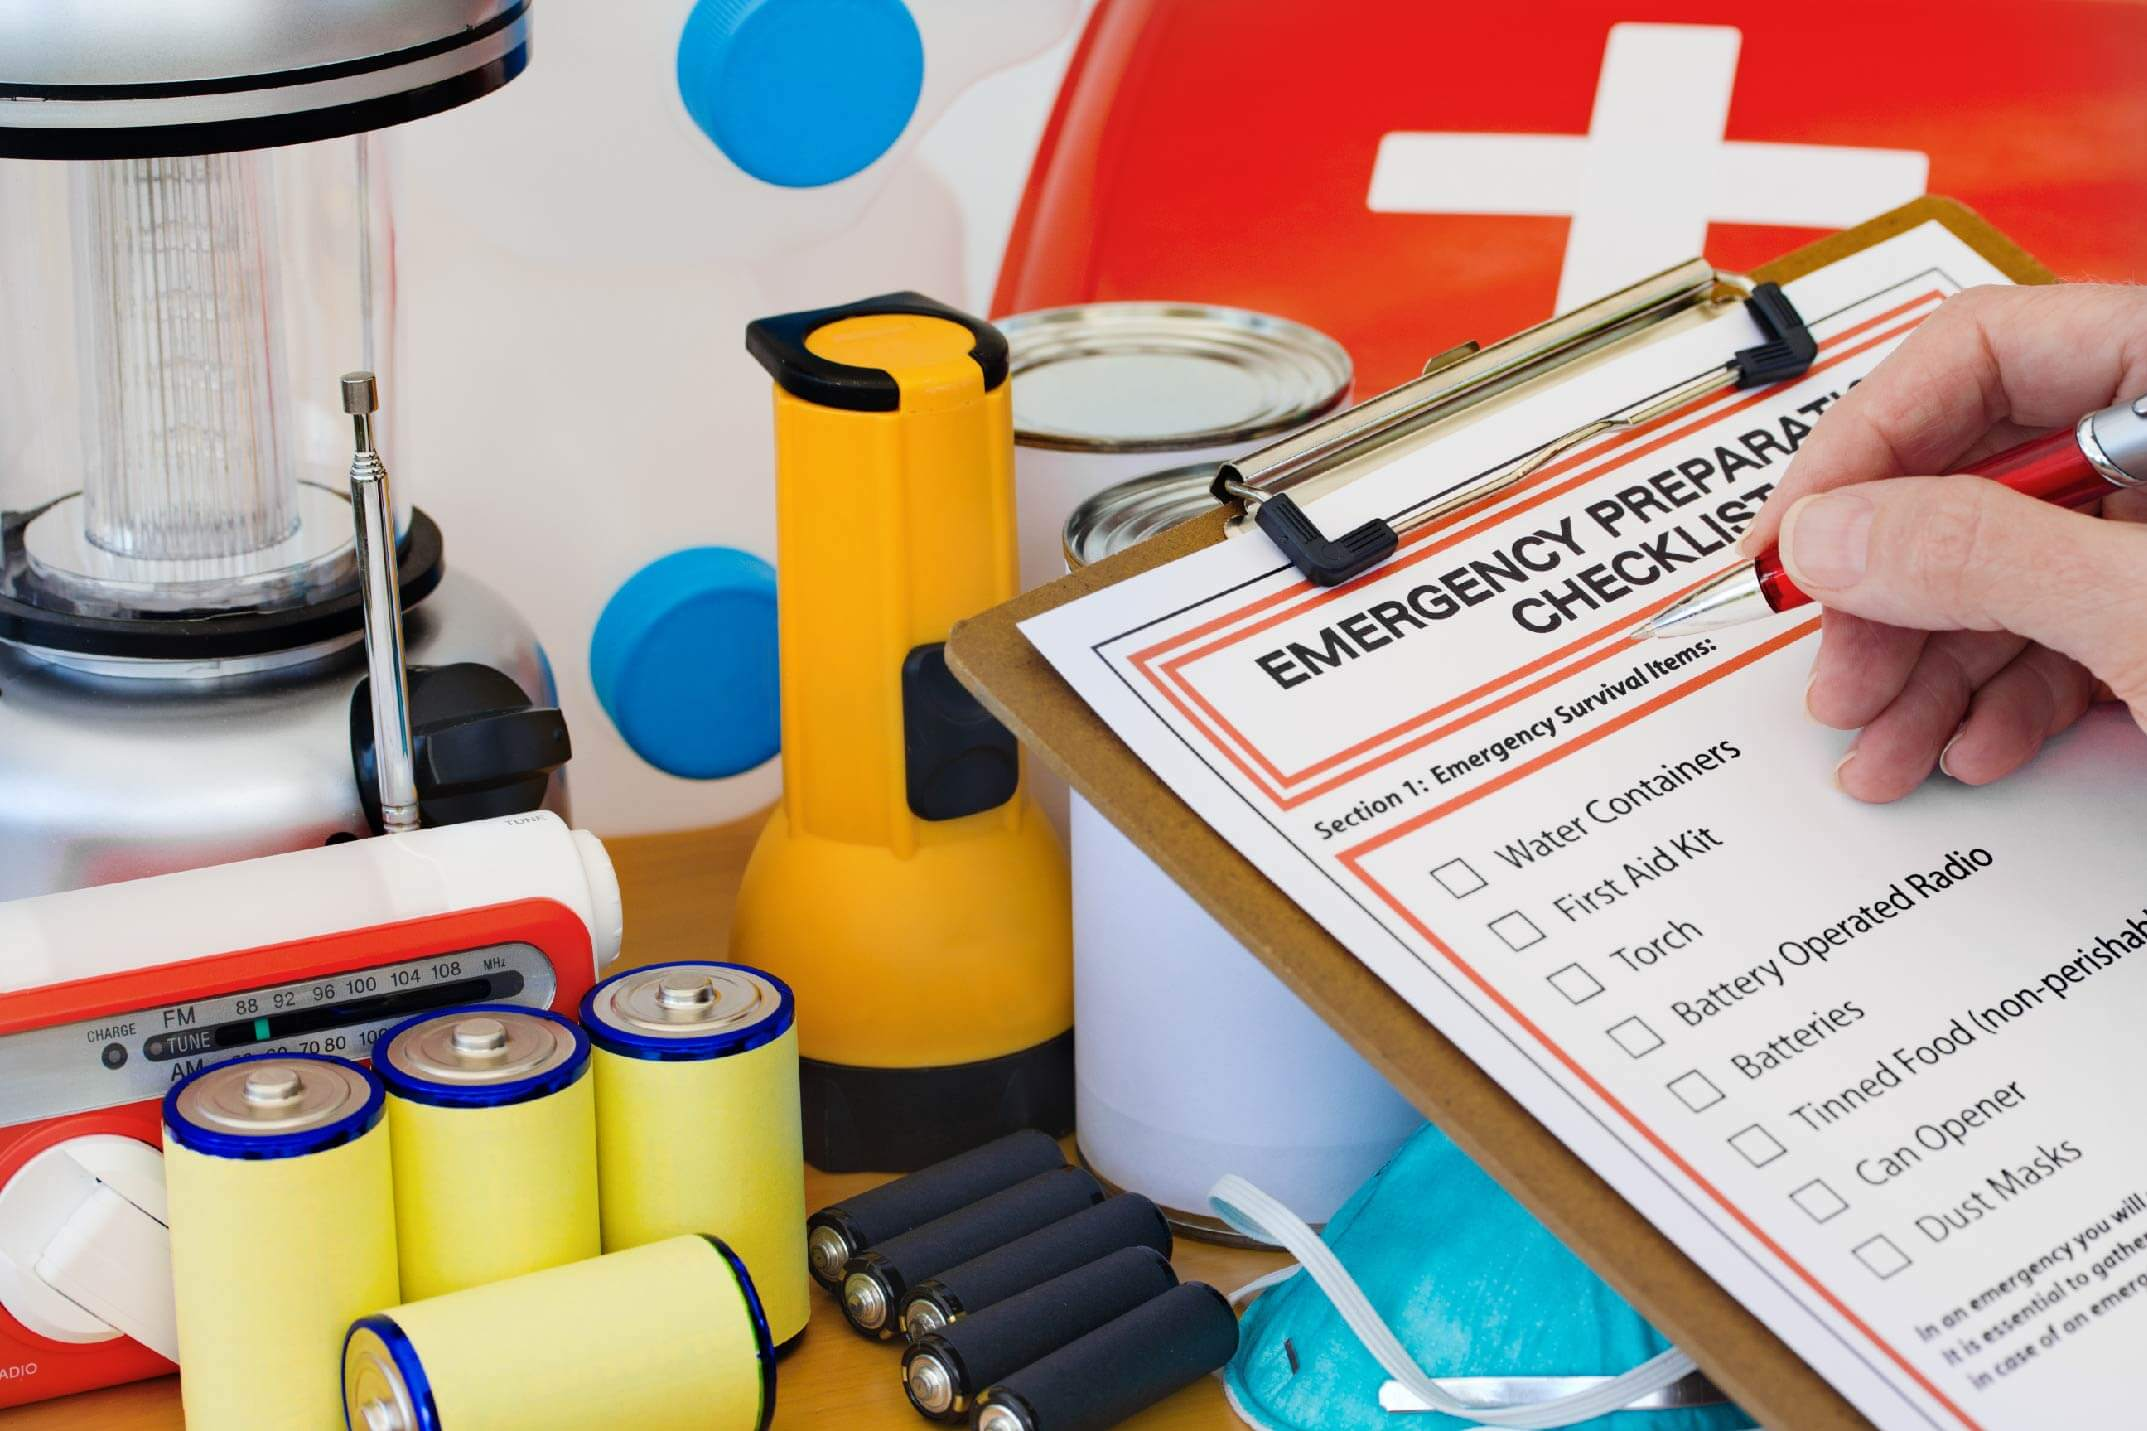 Be Prepared with Deals on Emergency Supplies